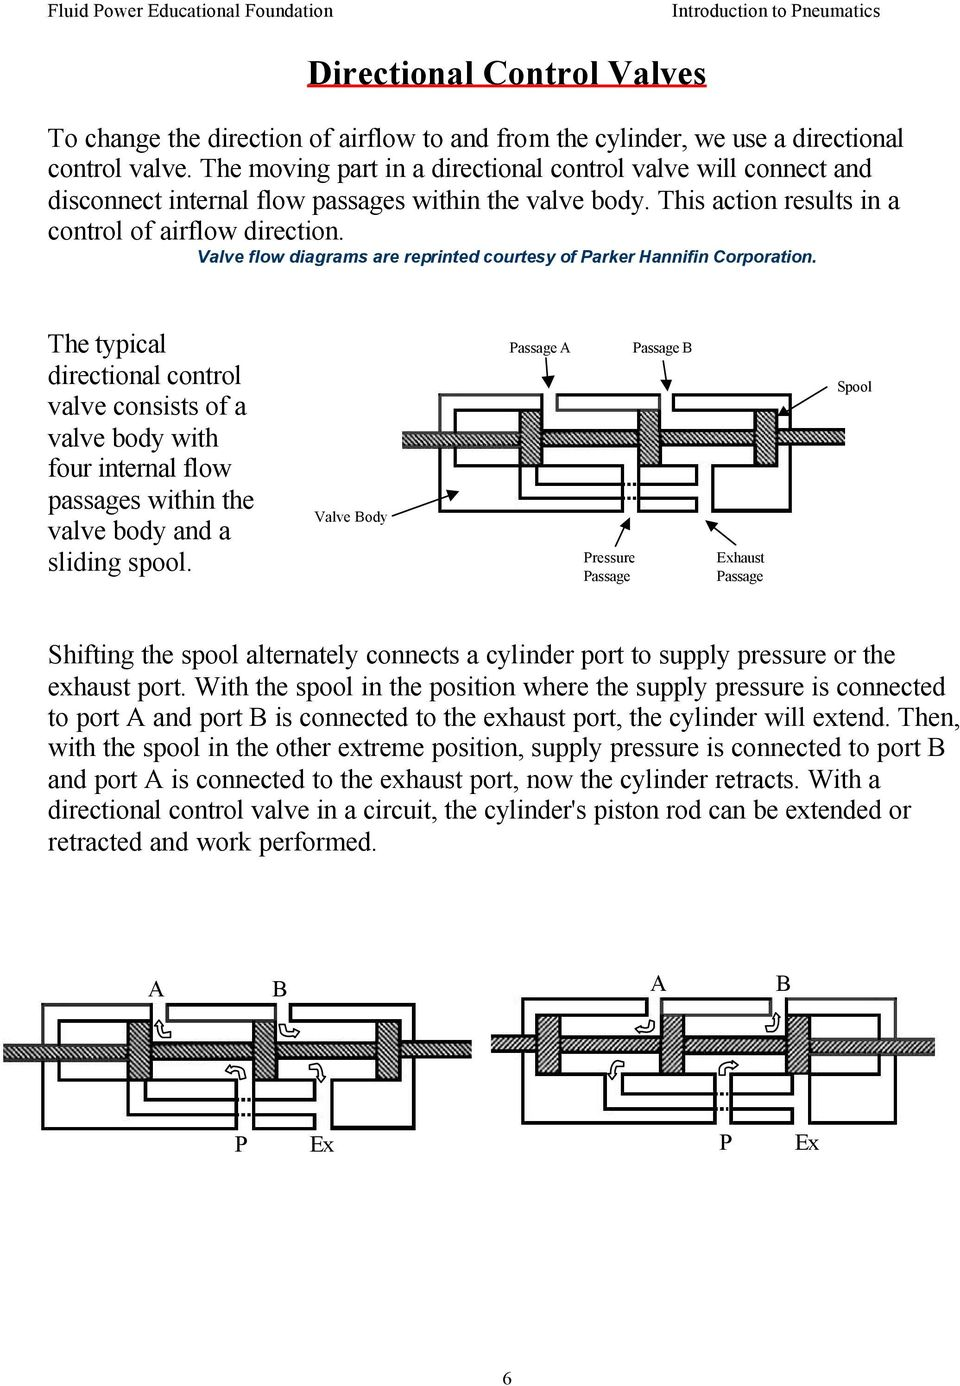 Introduction To Pneumatics And Pneumatic Circuit Problems For Fpef This Application Diagram Indicates How Loadsensing Valves Control Valve Flow Diagrams Are Reprinted Courtesy Of Parker Hannifin Corporation